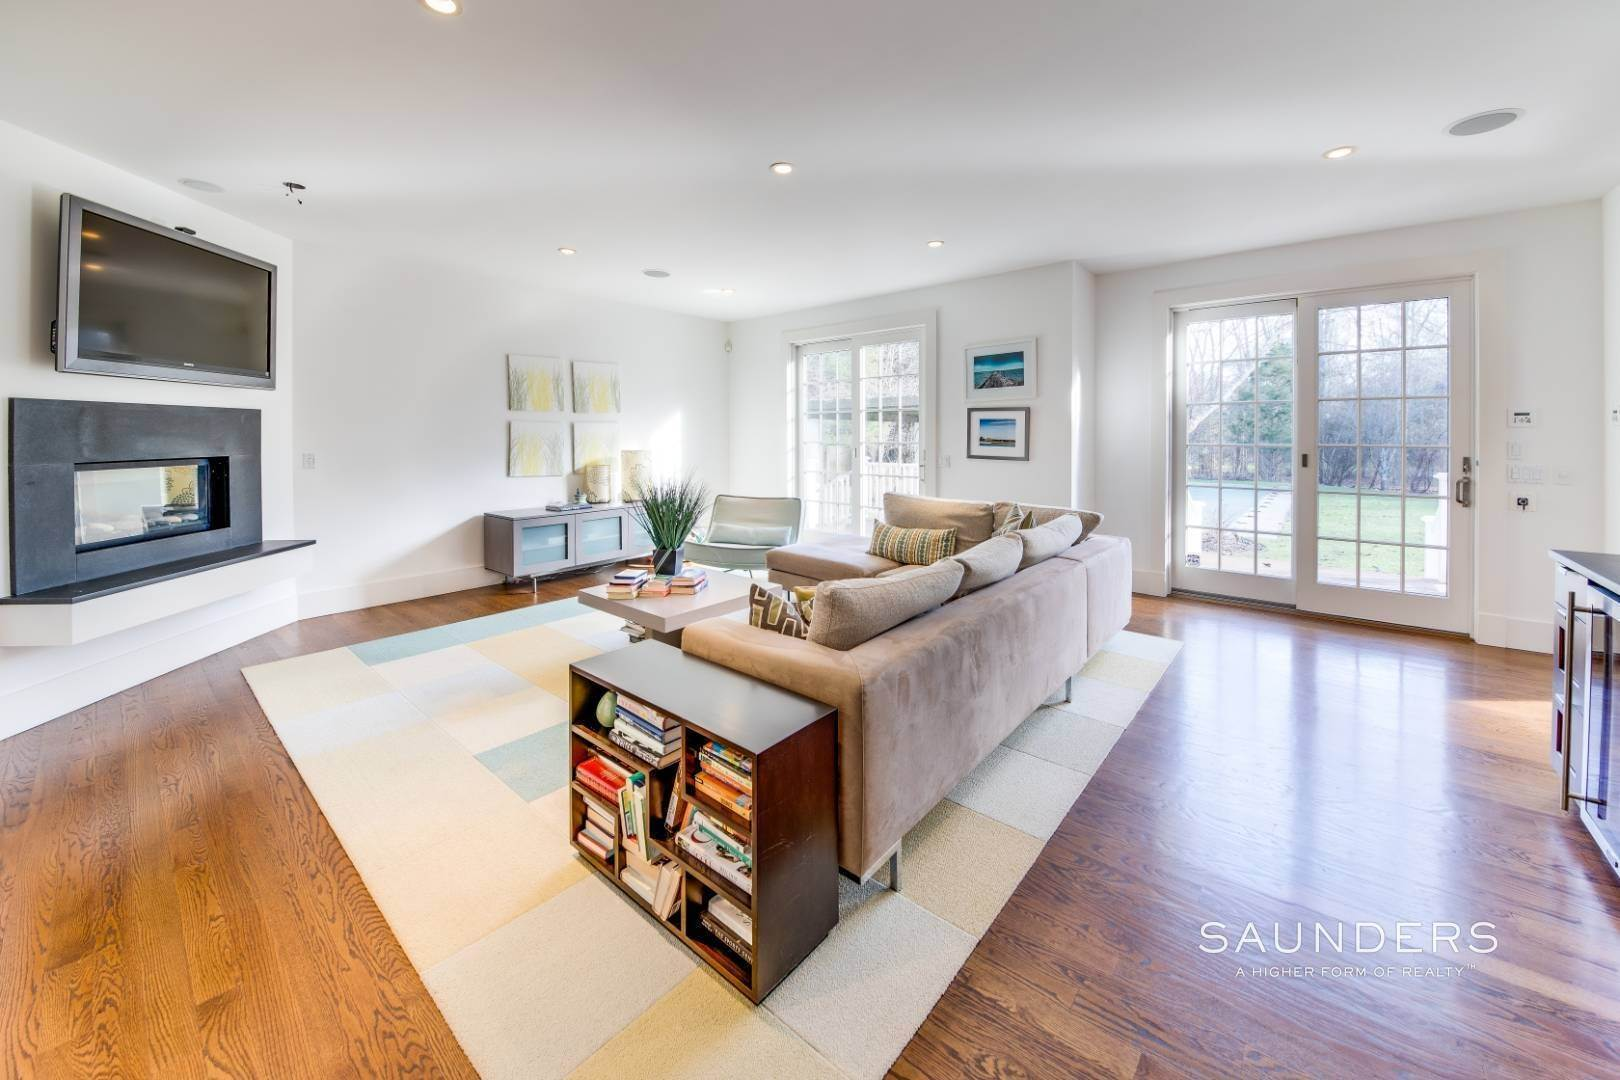 11. Single Family Homes for Sale at Wainscott South Traditional Near Beach Lane 10 Merriwood Drive, Wainscott, East Hampton Town, NY 11975